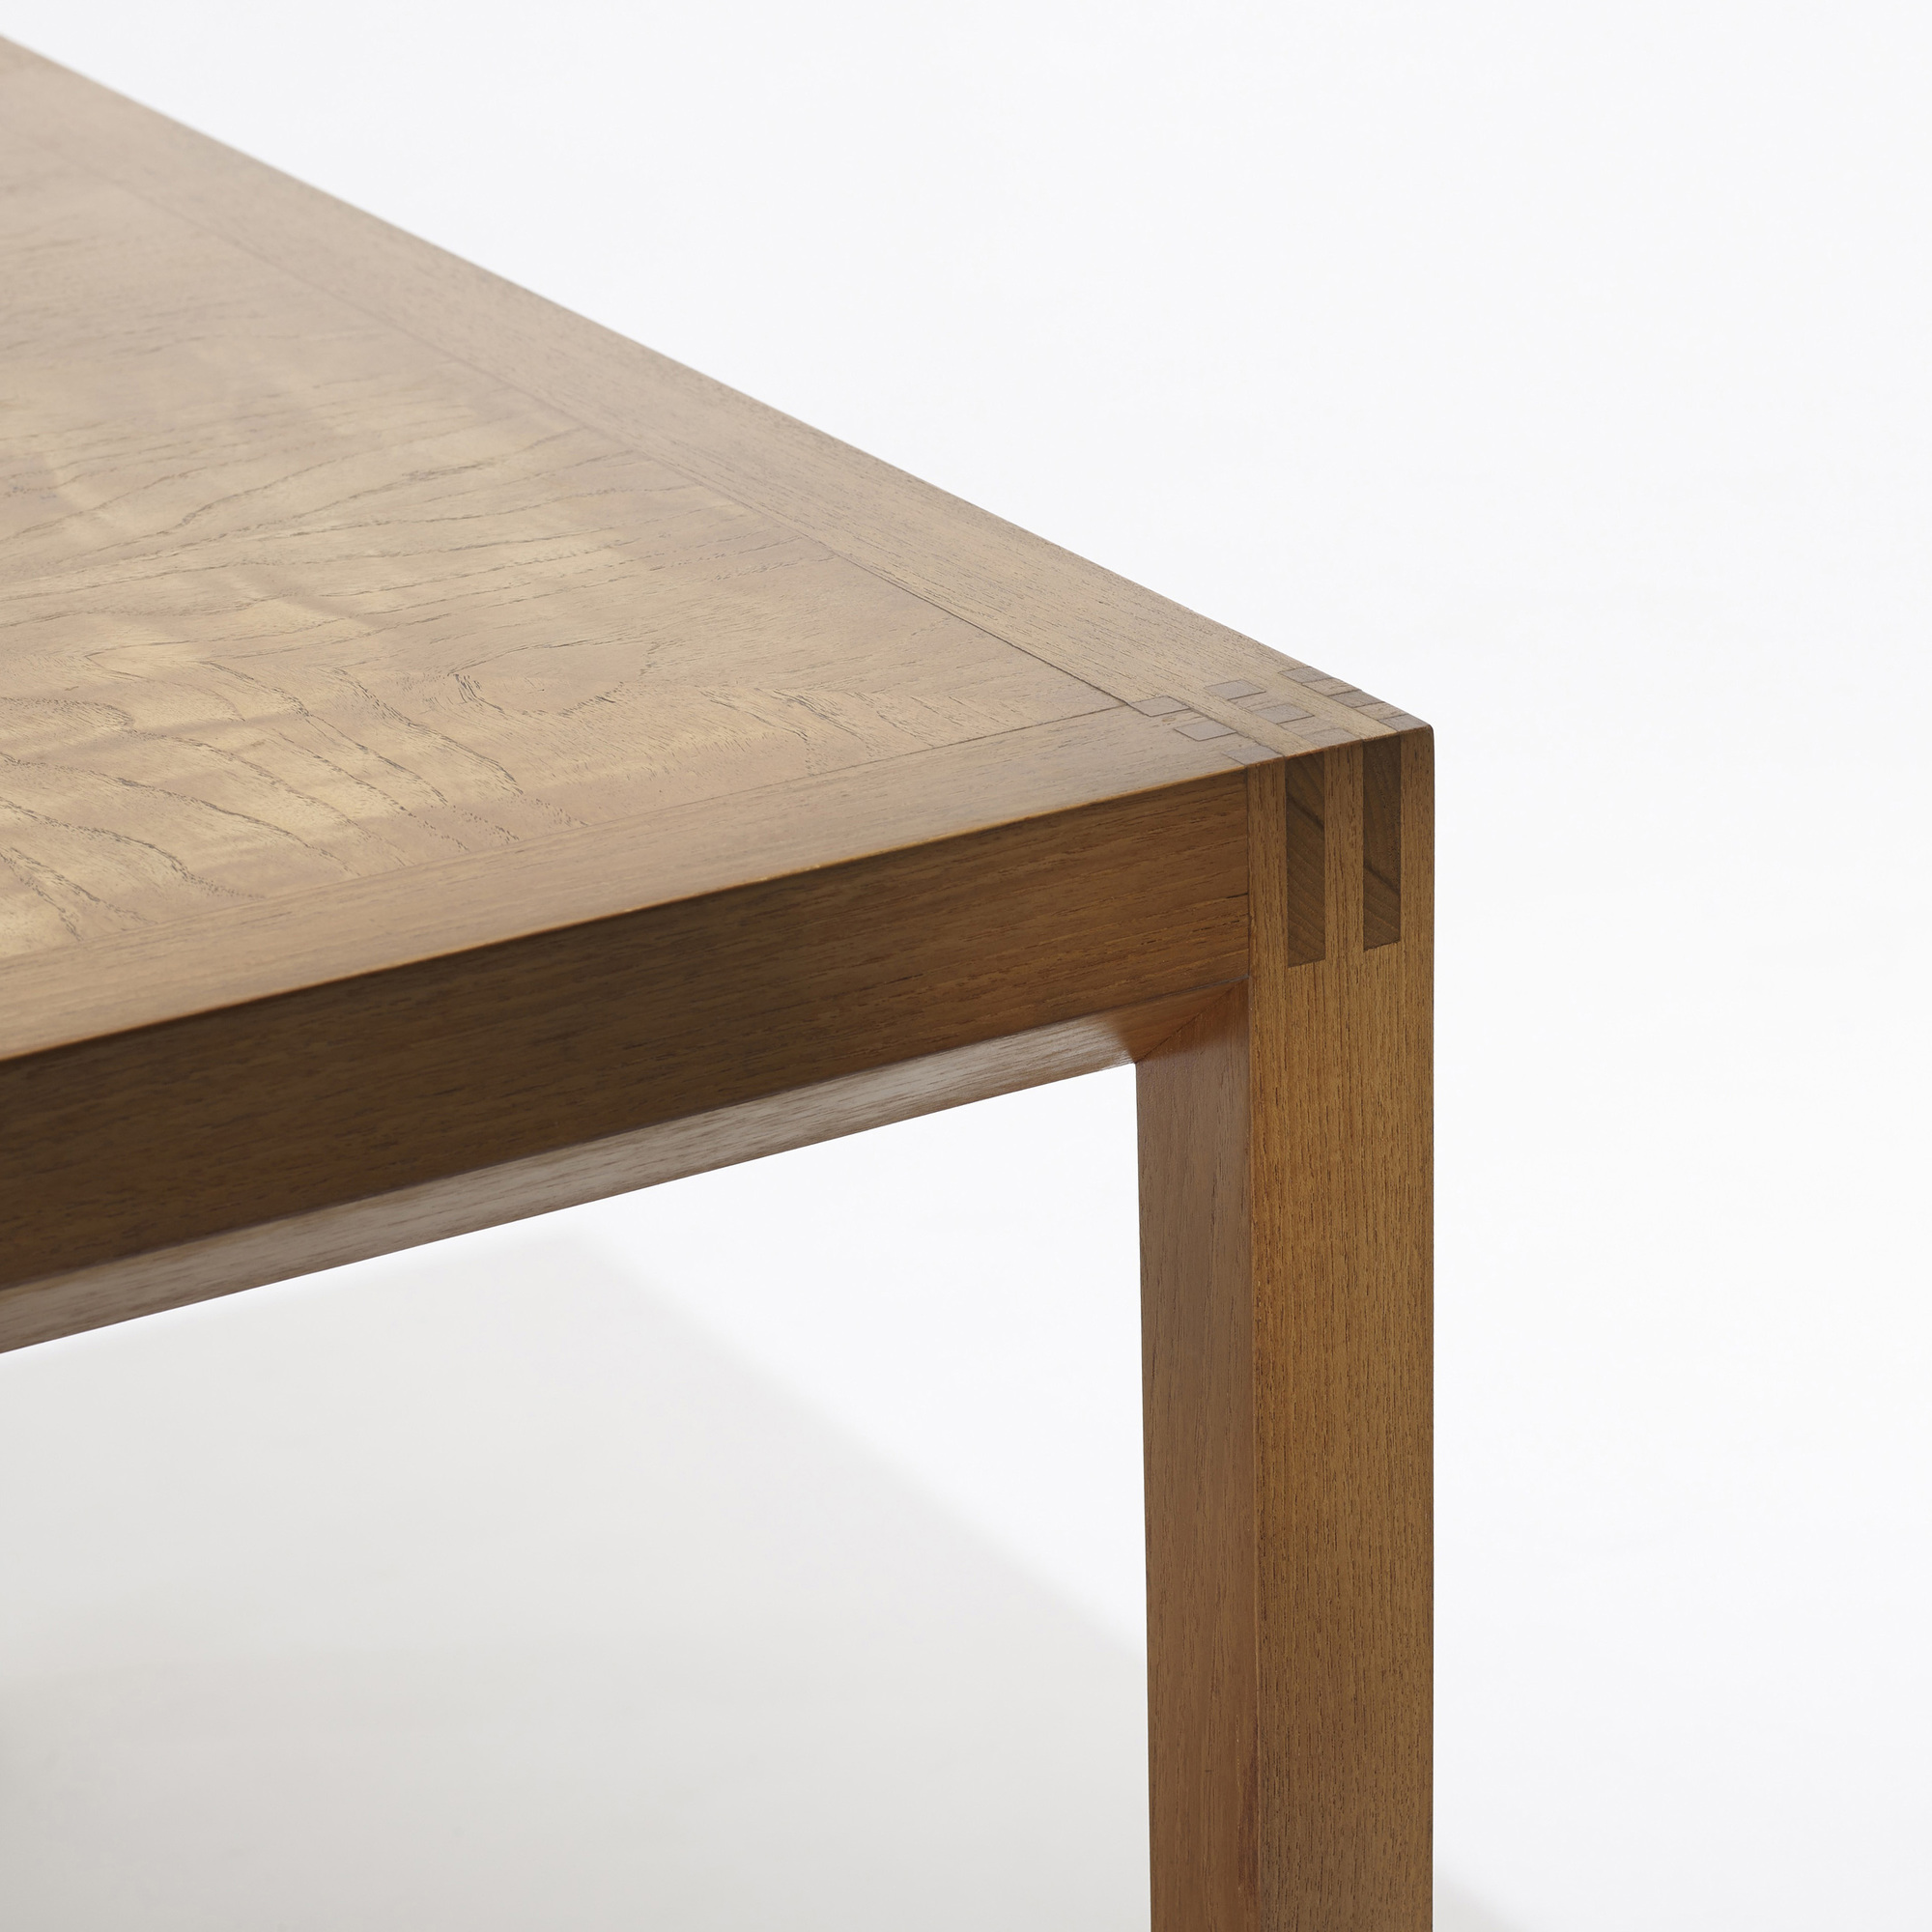 155: Don Powell and Robert Kleinschmidt / dining table from 860 Lake Shore Drive, Chicago (5 of 5)